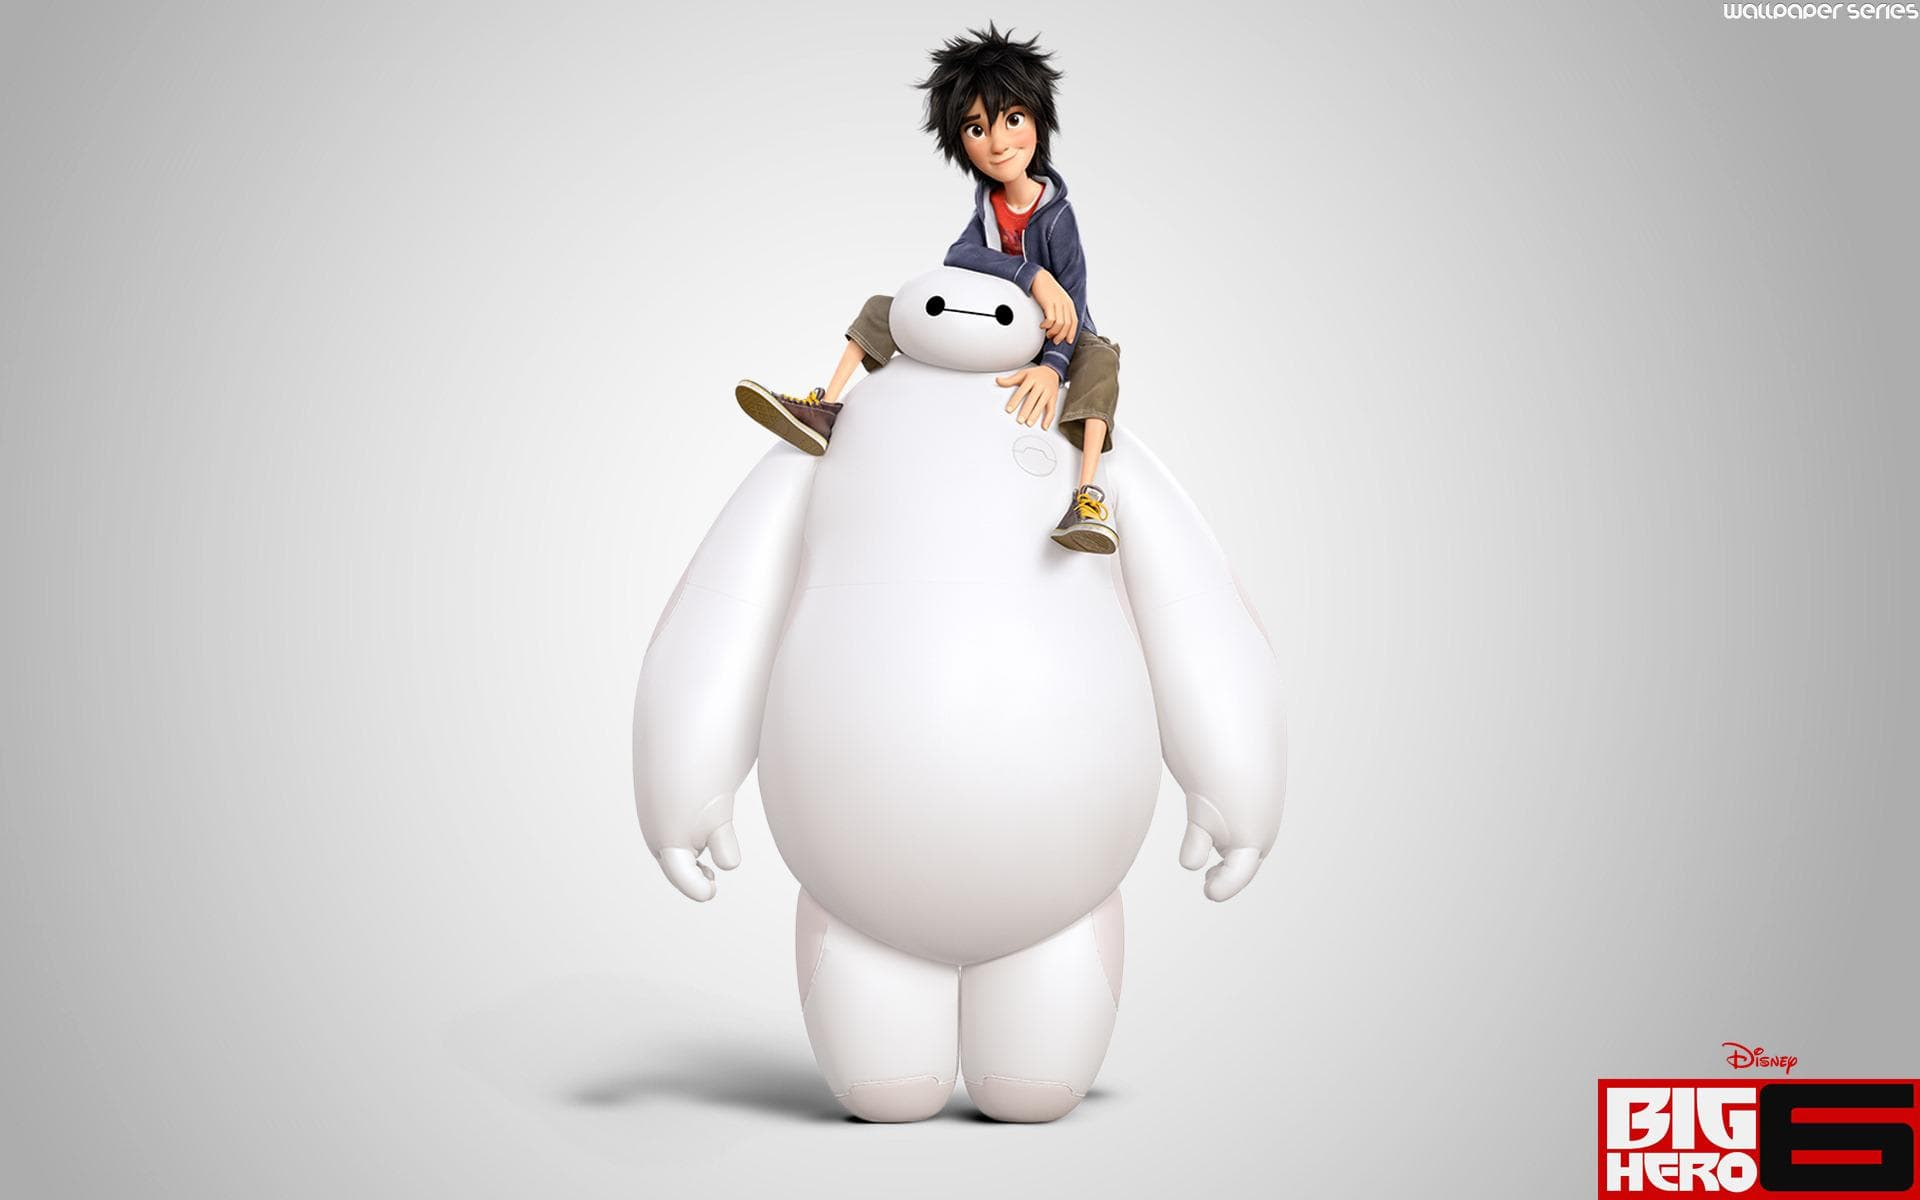 Big Hero 6 HQ wallpapers